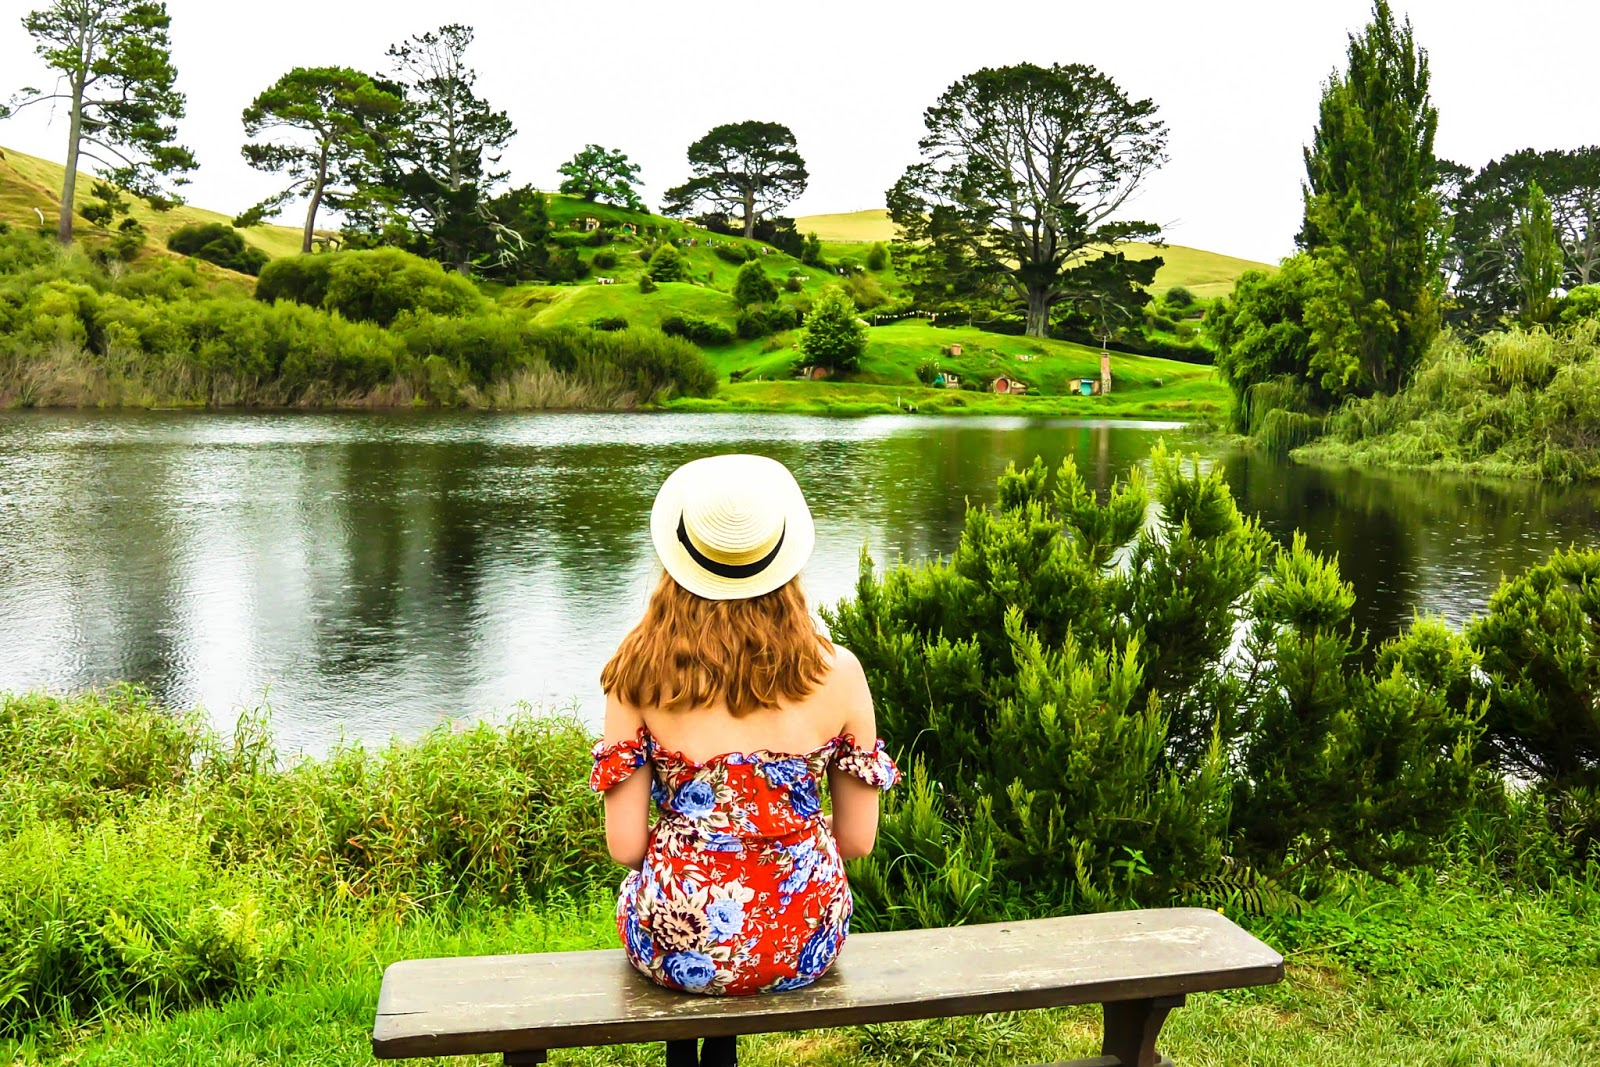 Things to do in Rotorua New Zealand : Lord of the Rings Hobbiton movie set tour